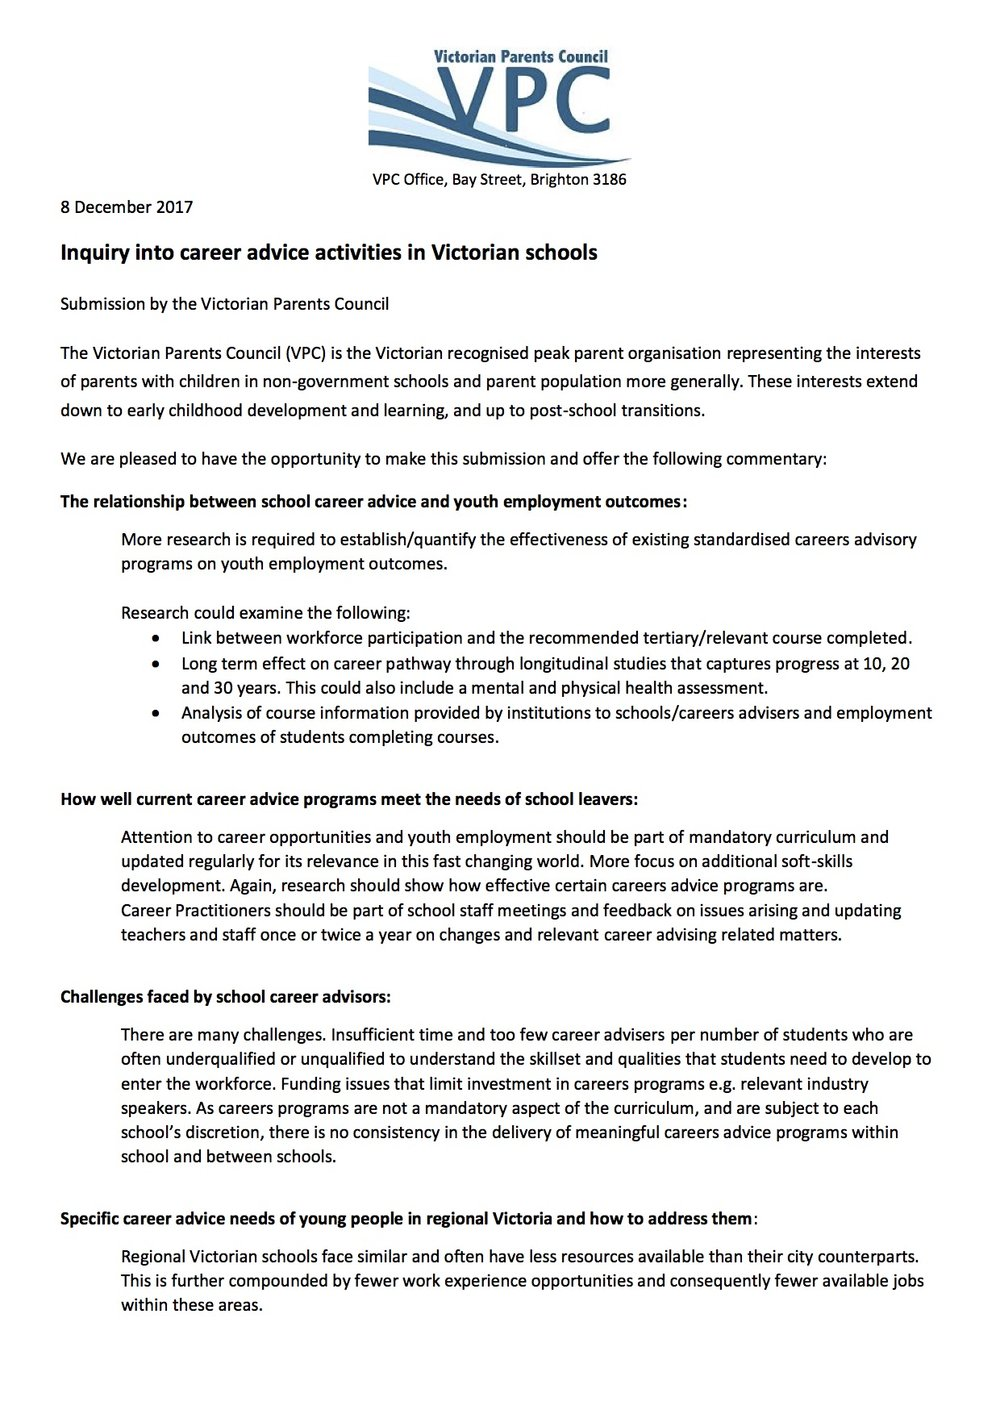 Inquiry into career advice activities in Victorian schools